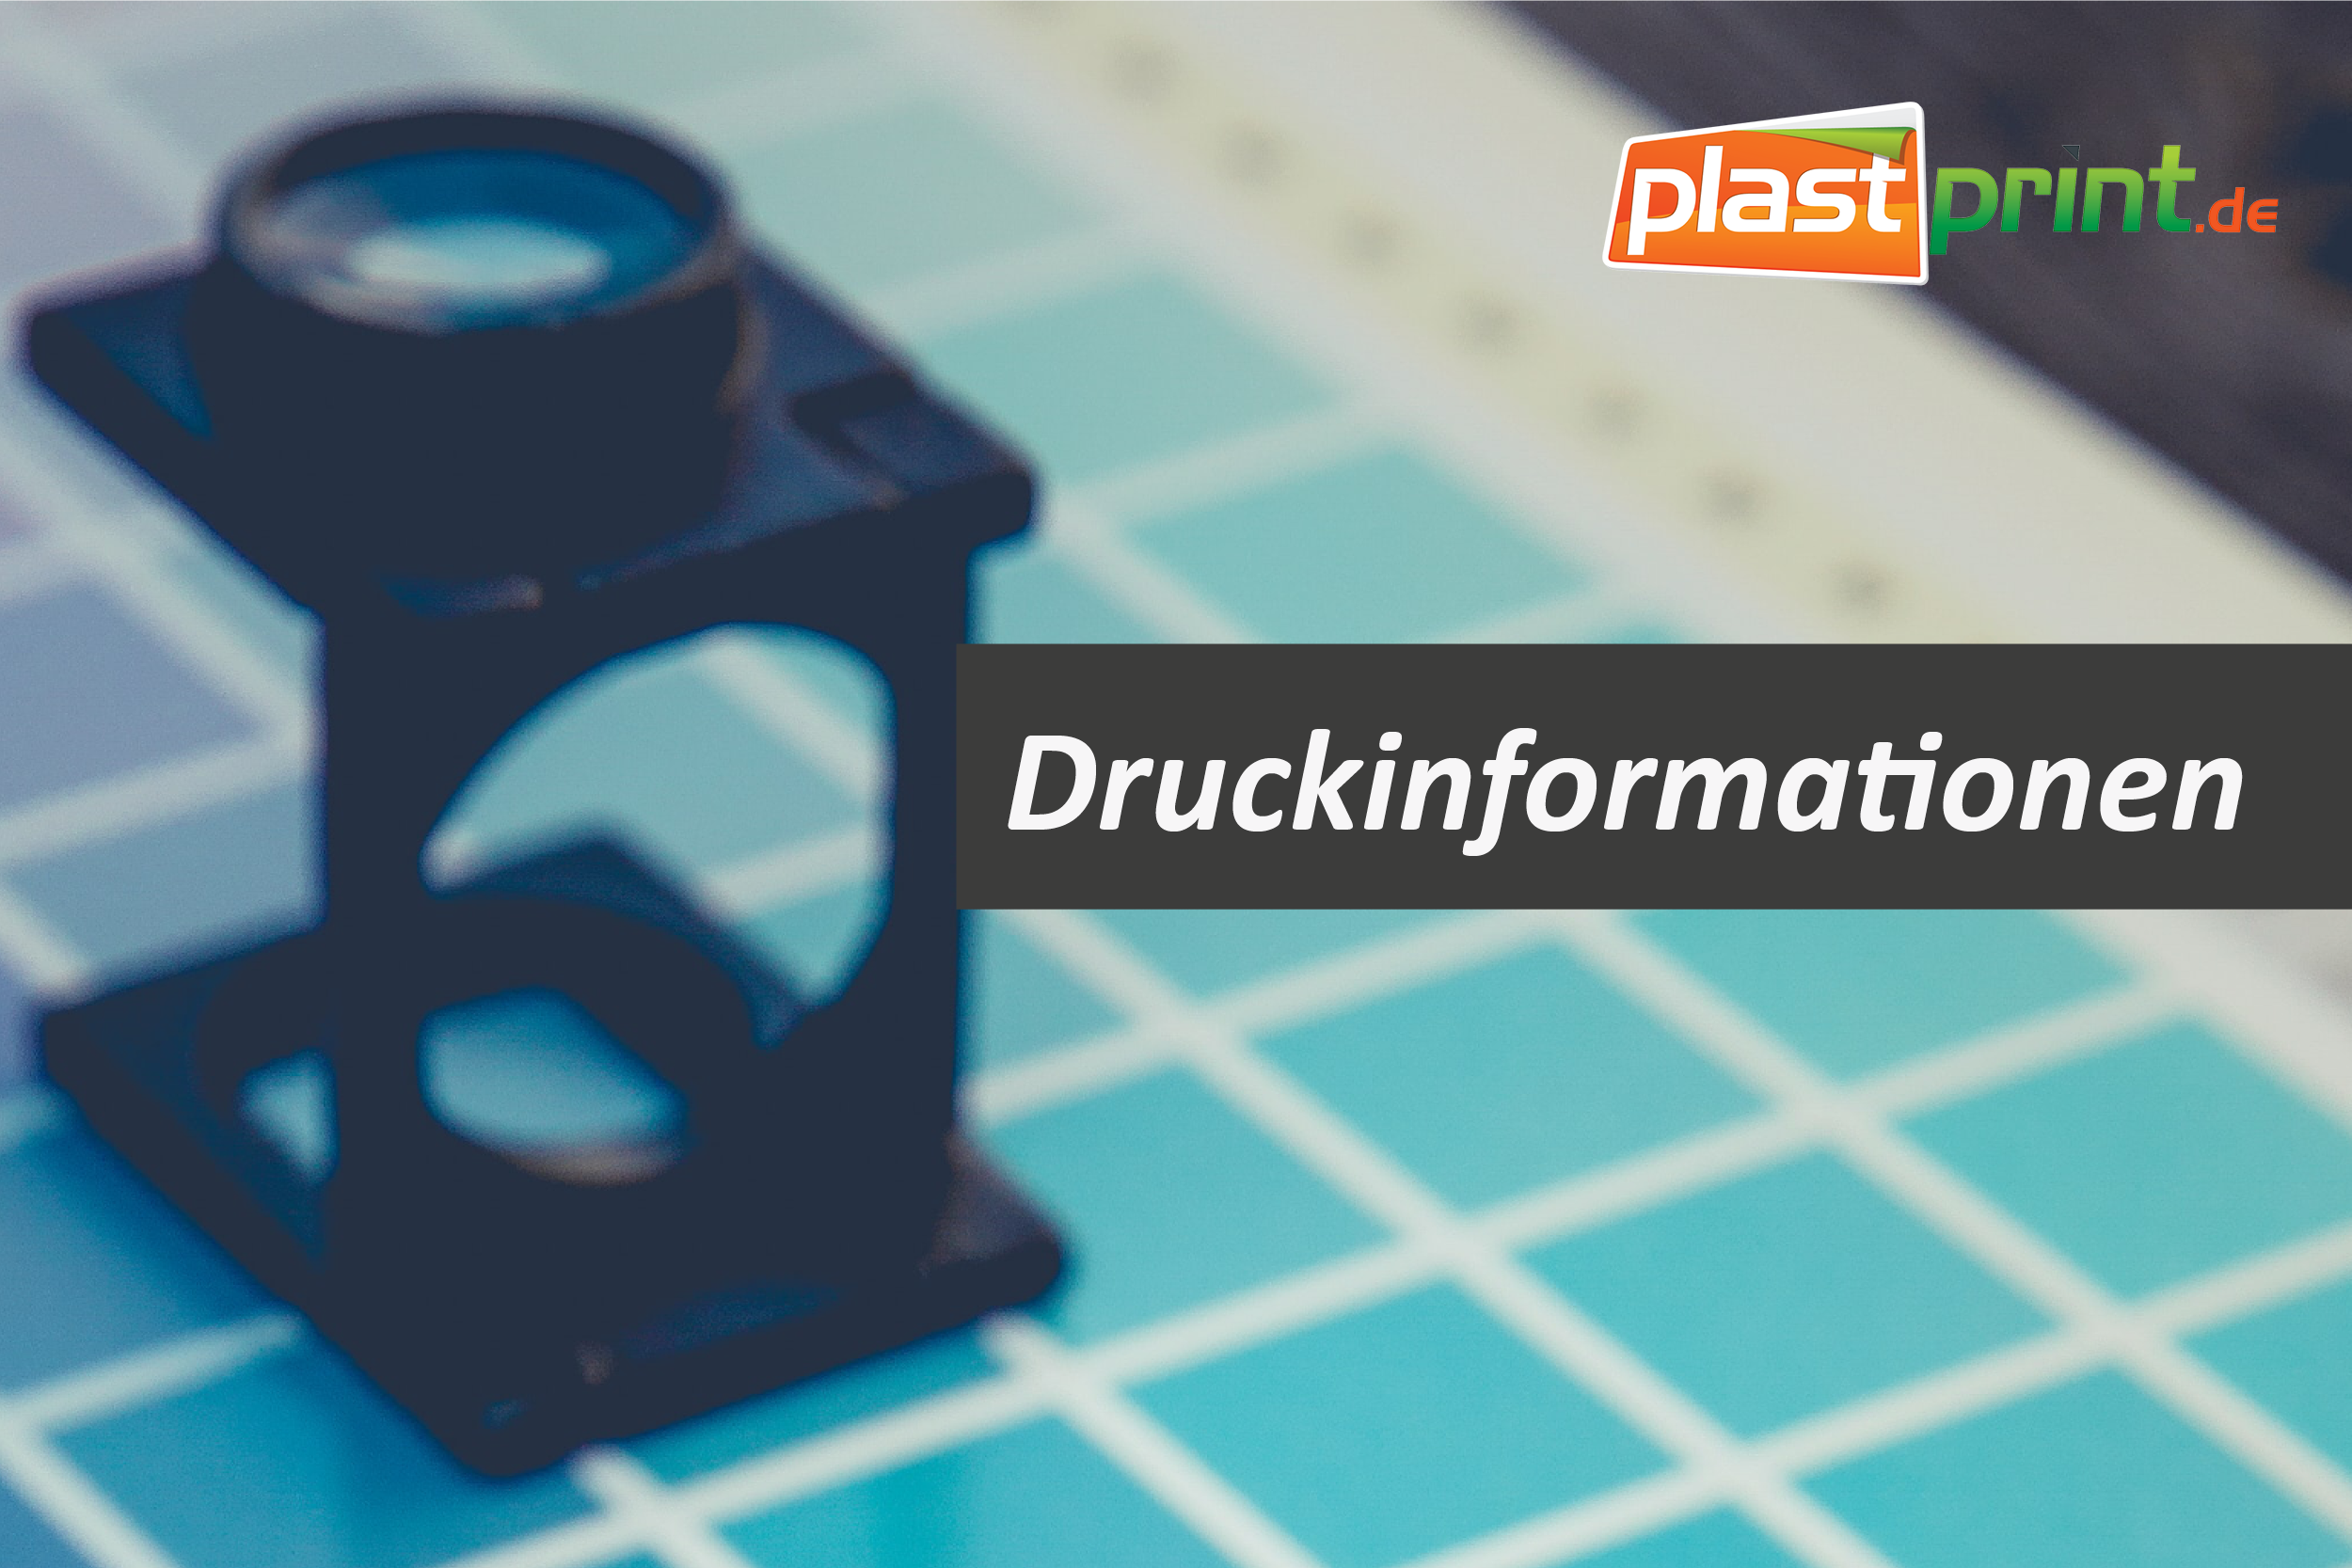 Druckinformationen